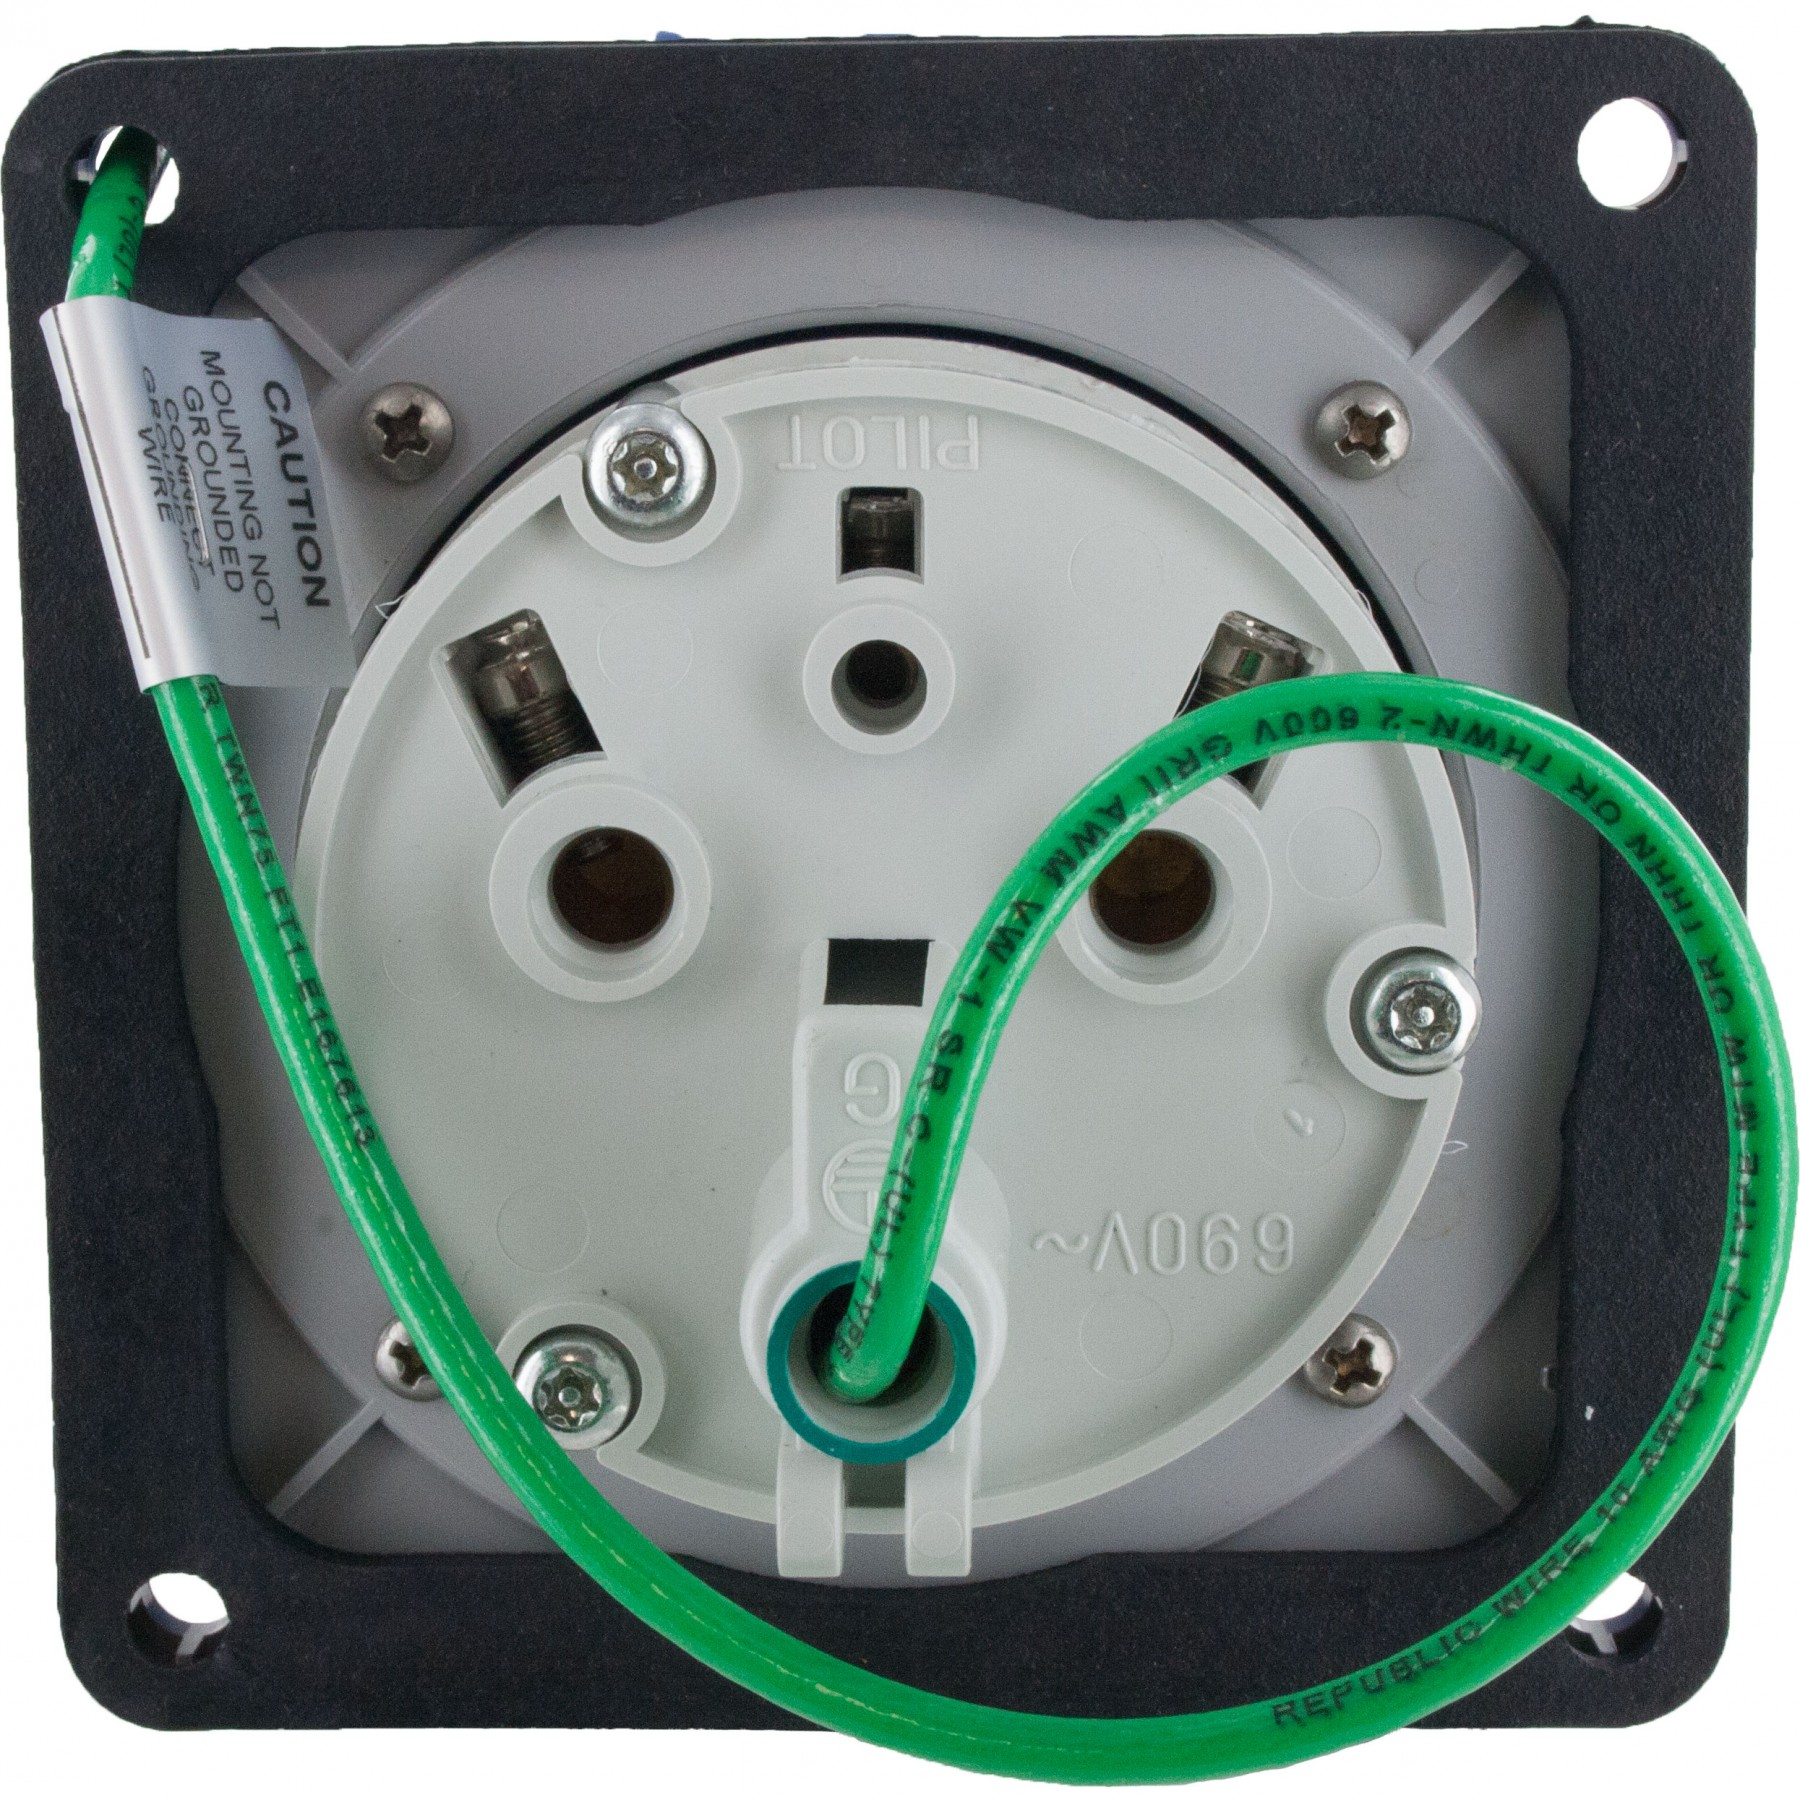 360R6W Pin And Sleeve Receptacle 60 Amp 2 Pole 3 Wire | ElecDirect